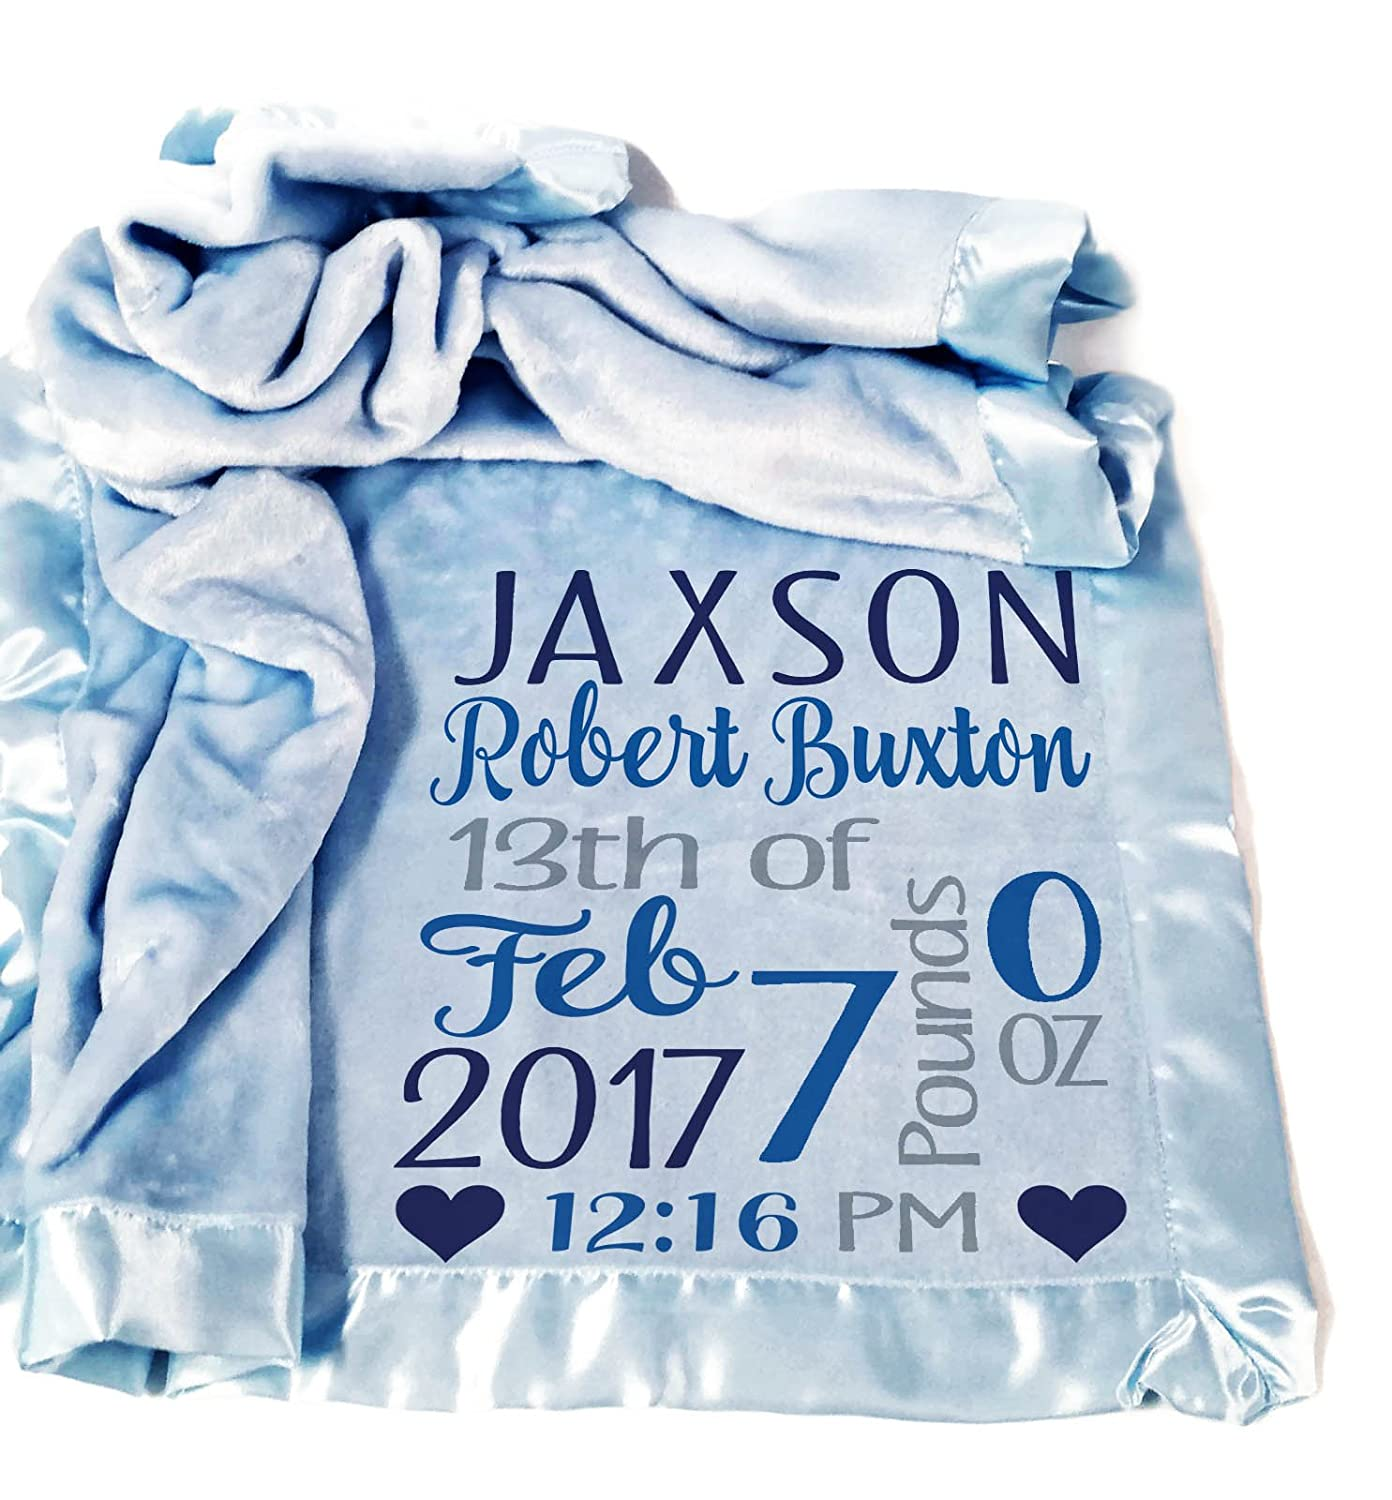 42df1383c Personalized Baby Blankets /( 30x40, Pink Micro Plush Fleece with Satin  Edge/) for Girls Custom ...